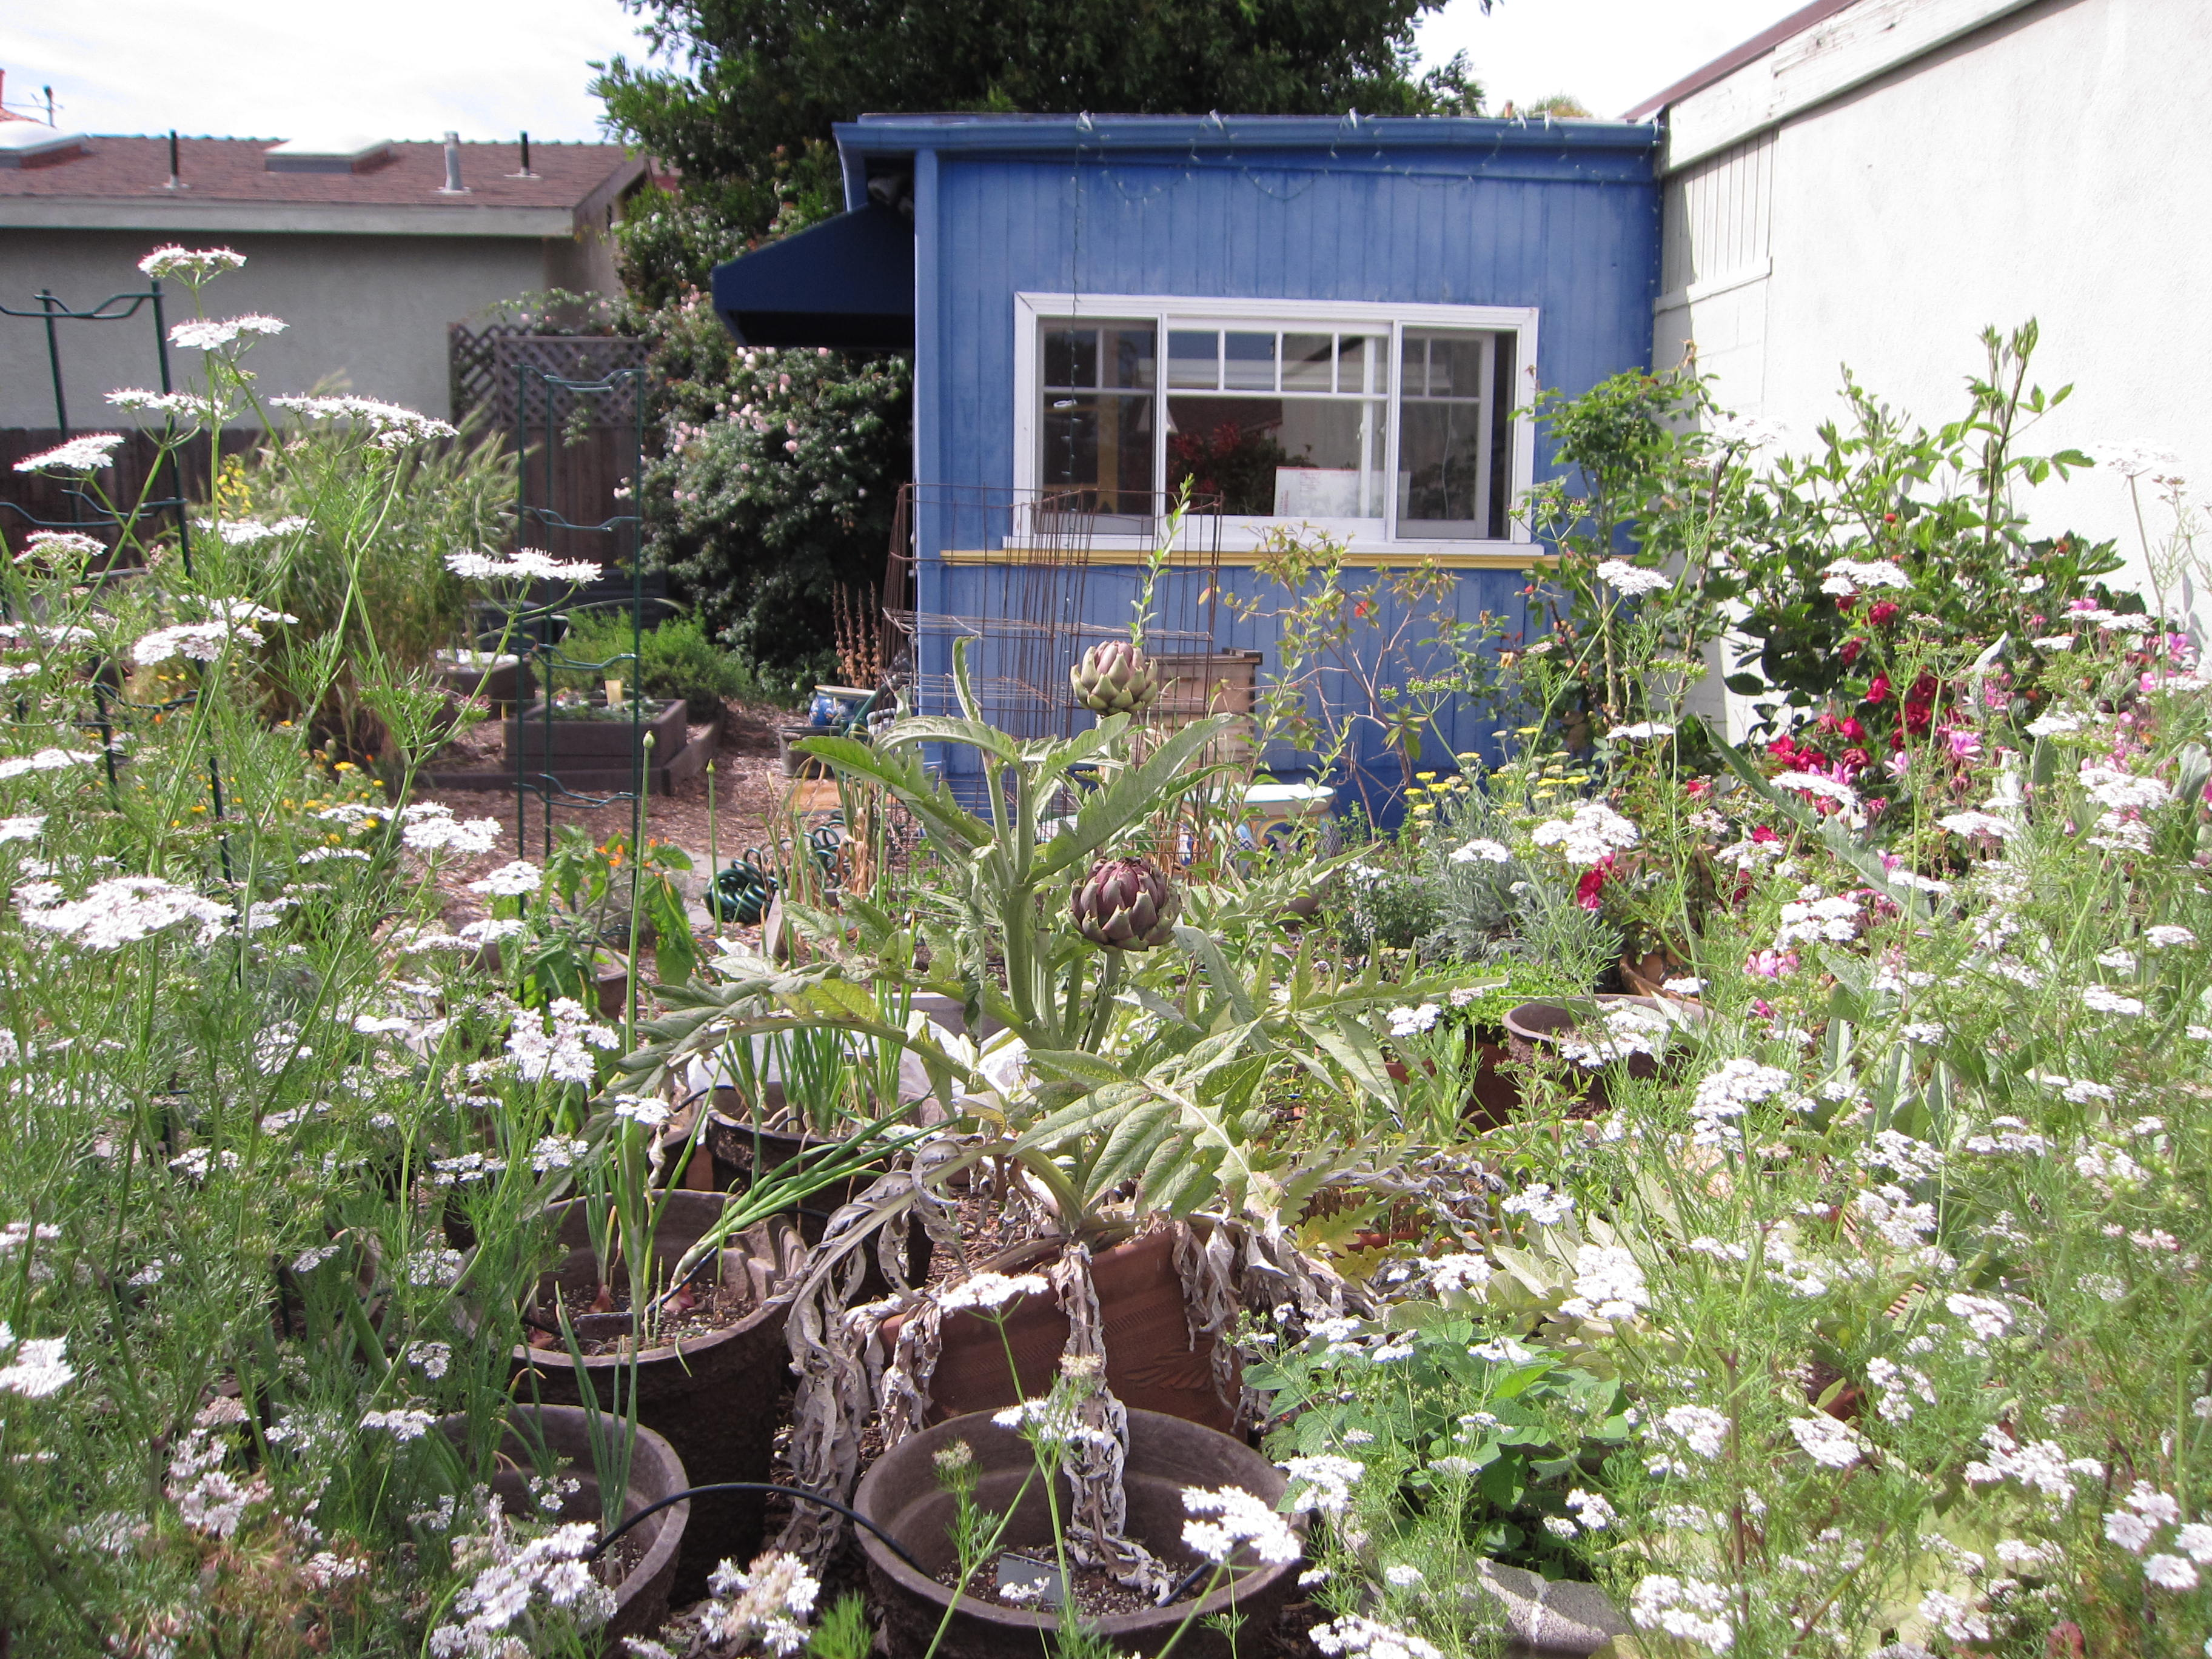 We're letting a couple Winnetka Purple artichokes flower so we can save the seeds for the Seed Library of Los Angeles. Cilantro bolts to seed nearby, attracting good bugs to the garden. Volunteers are the best!